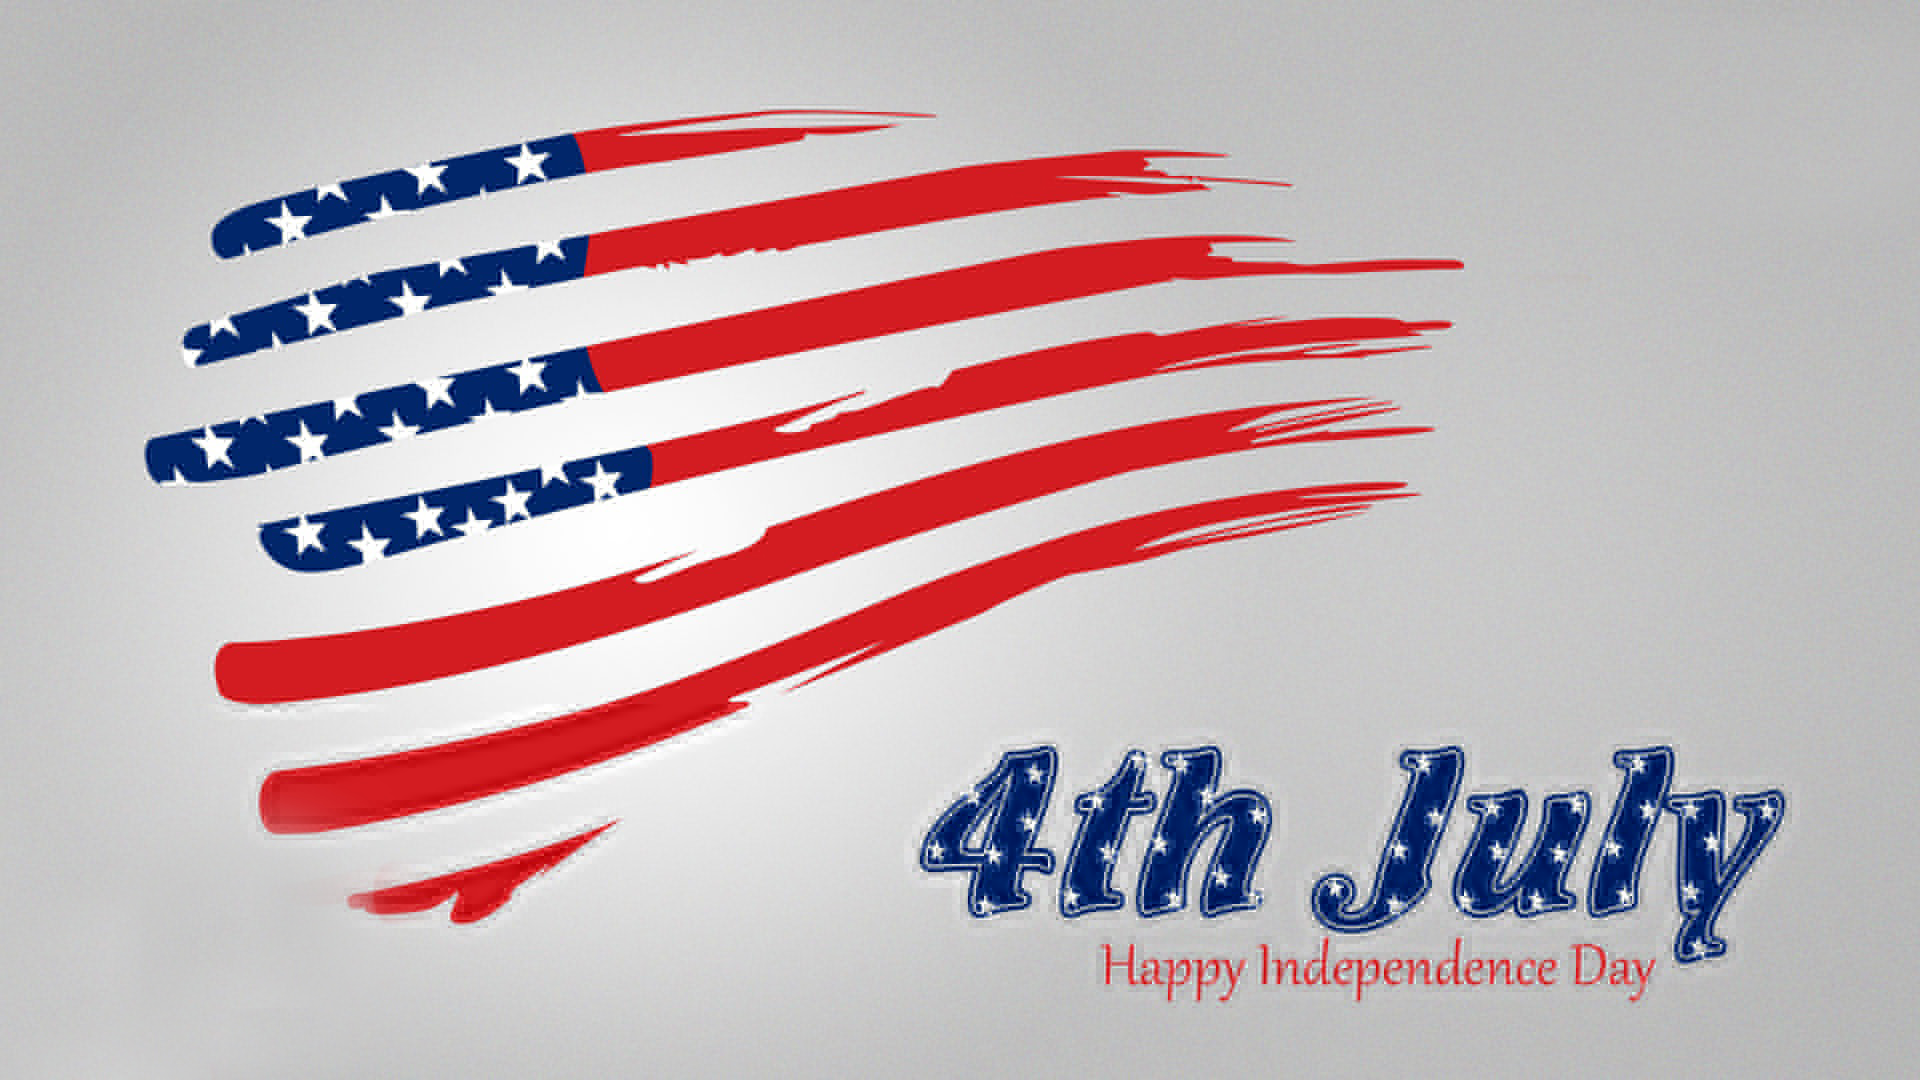 Independence Day USA Images HD